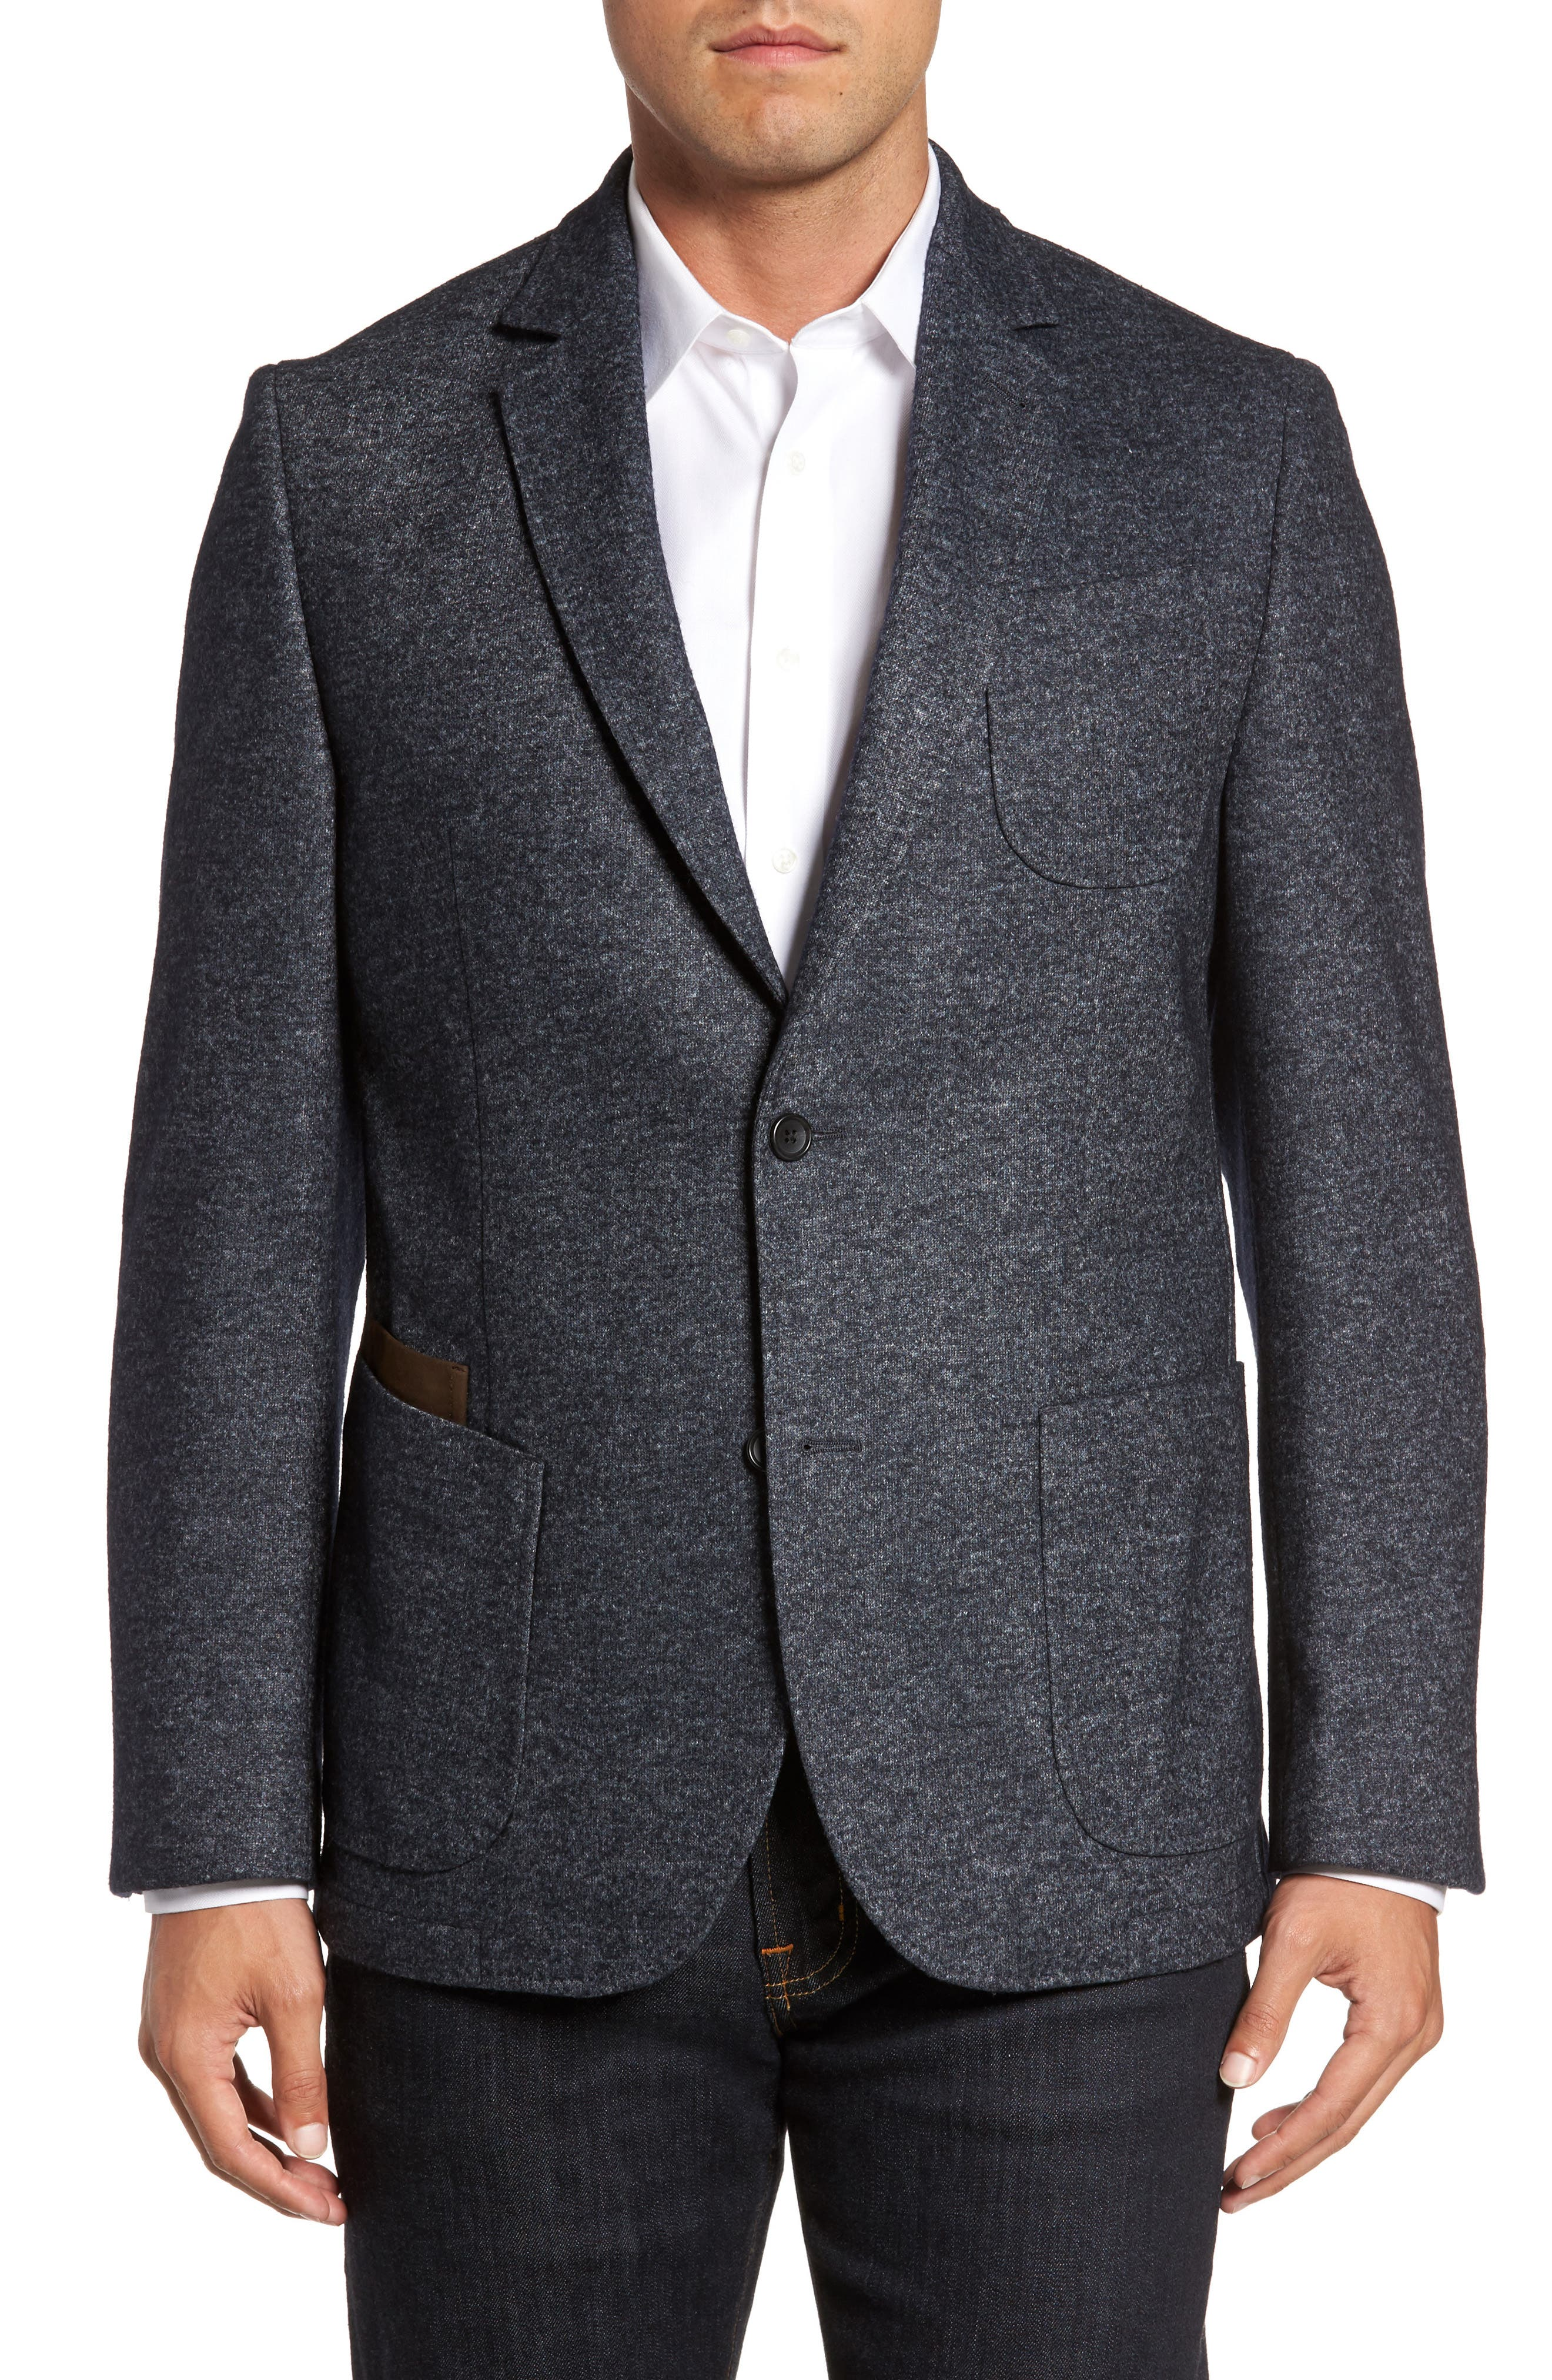 Main Image - FLYNT Classic Fit Suede Trim Jersey Sport Coat